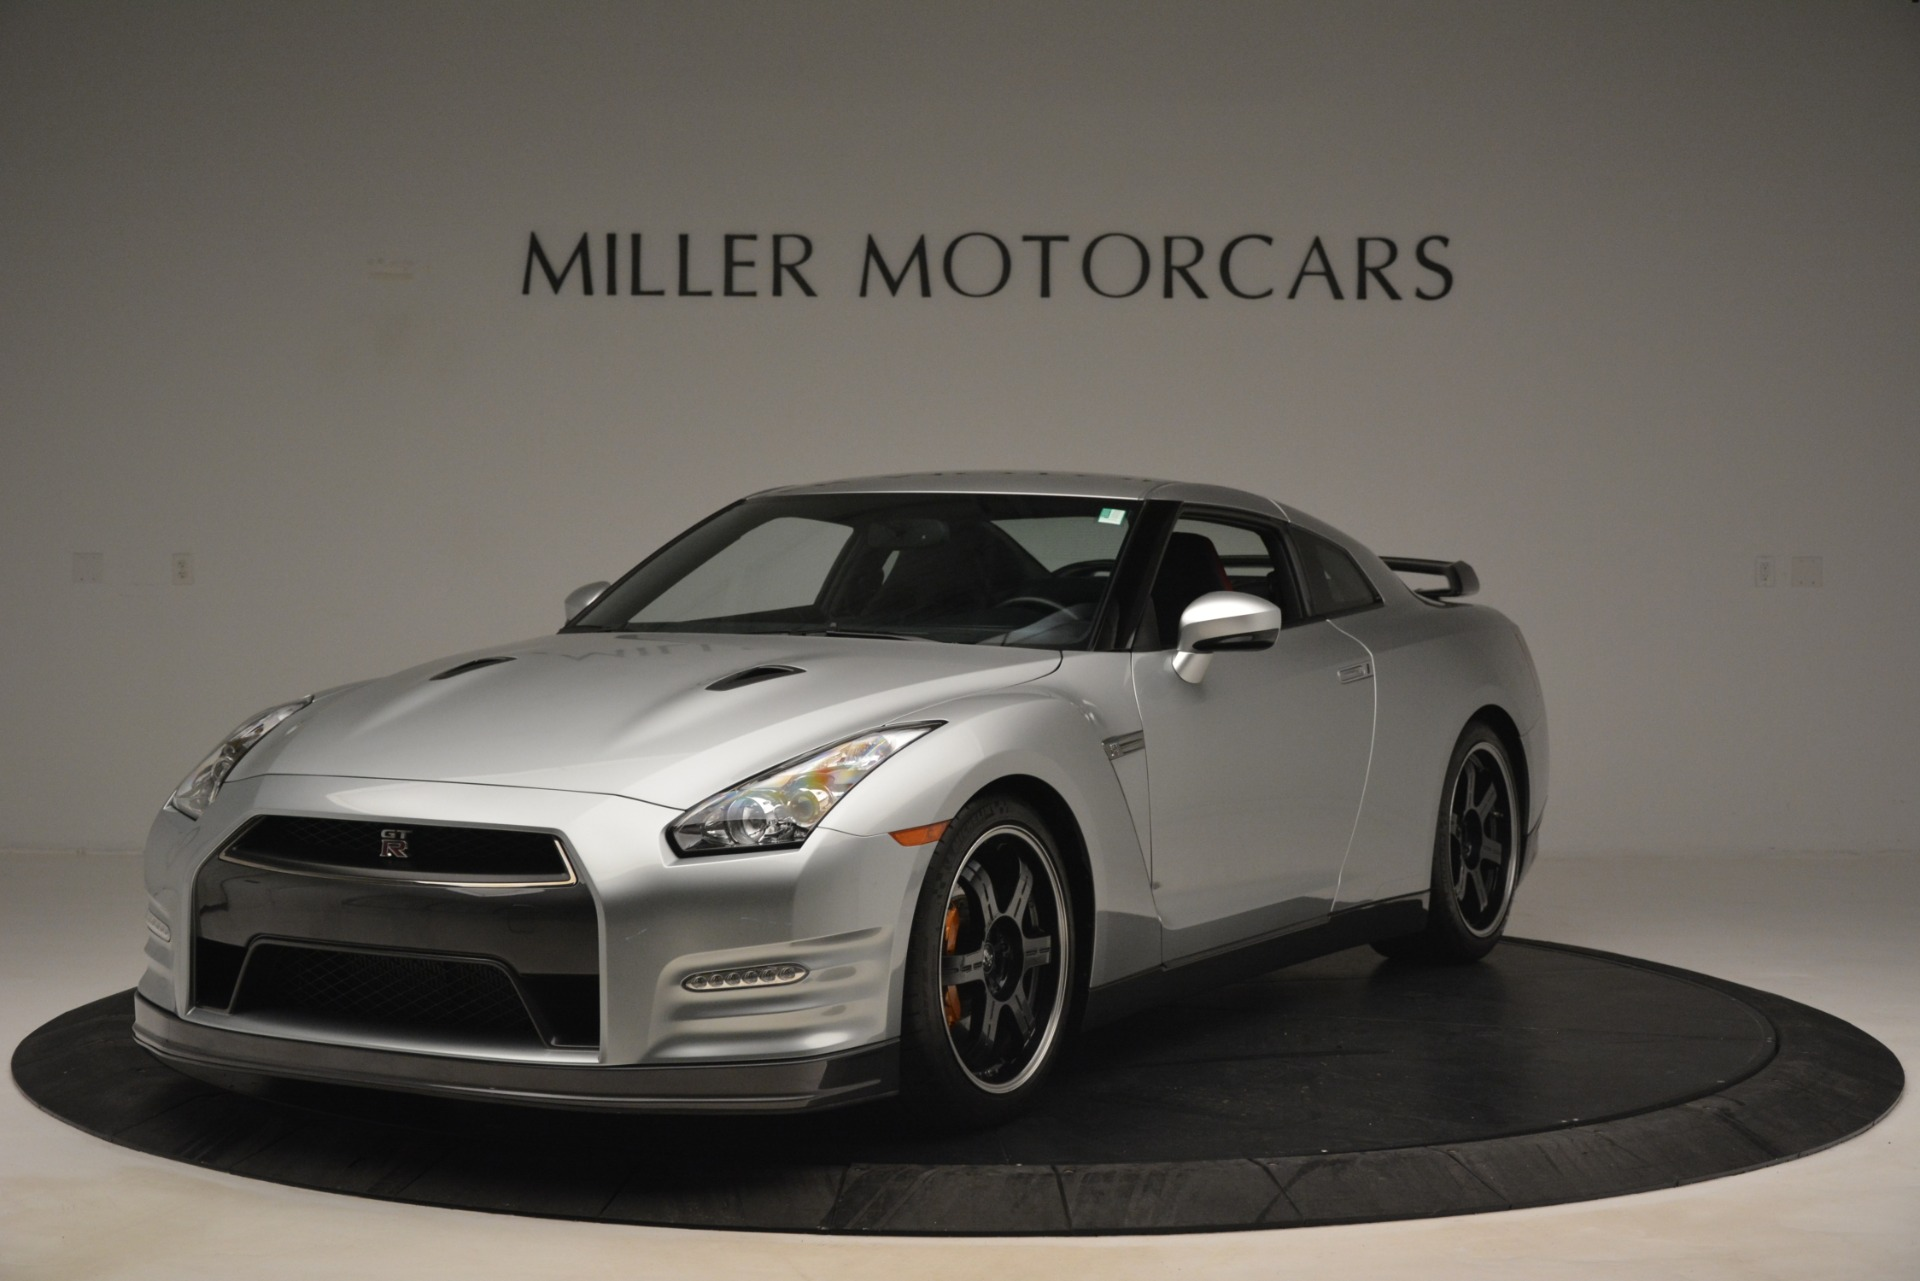 Used 2013 Nissan GT-R Black Edition for sale Sold at Bugatti of Greenwich in Greenwich CT 06830 1